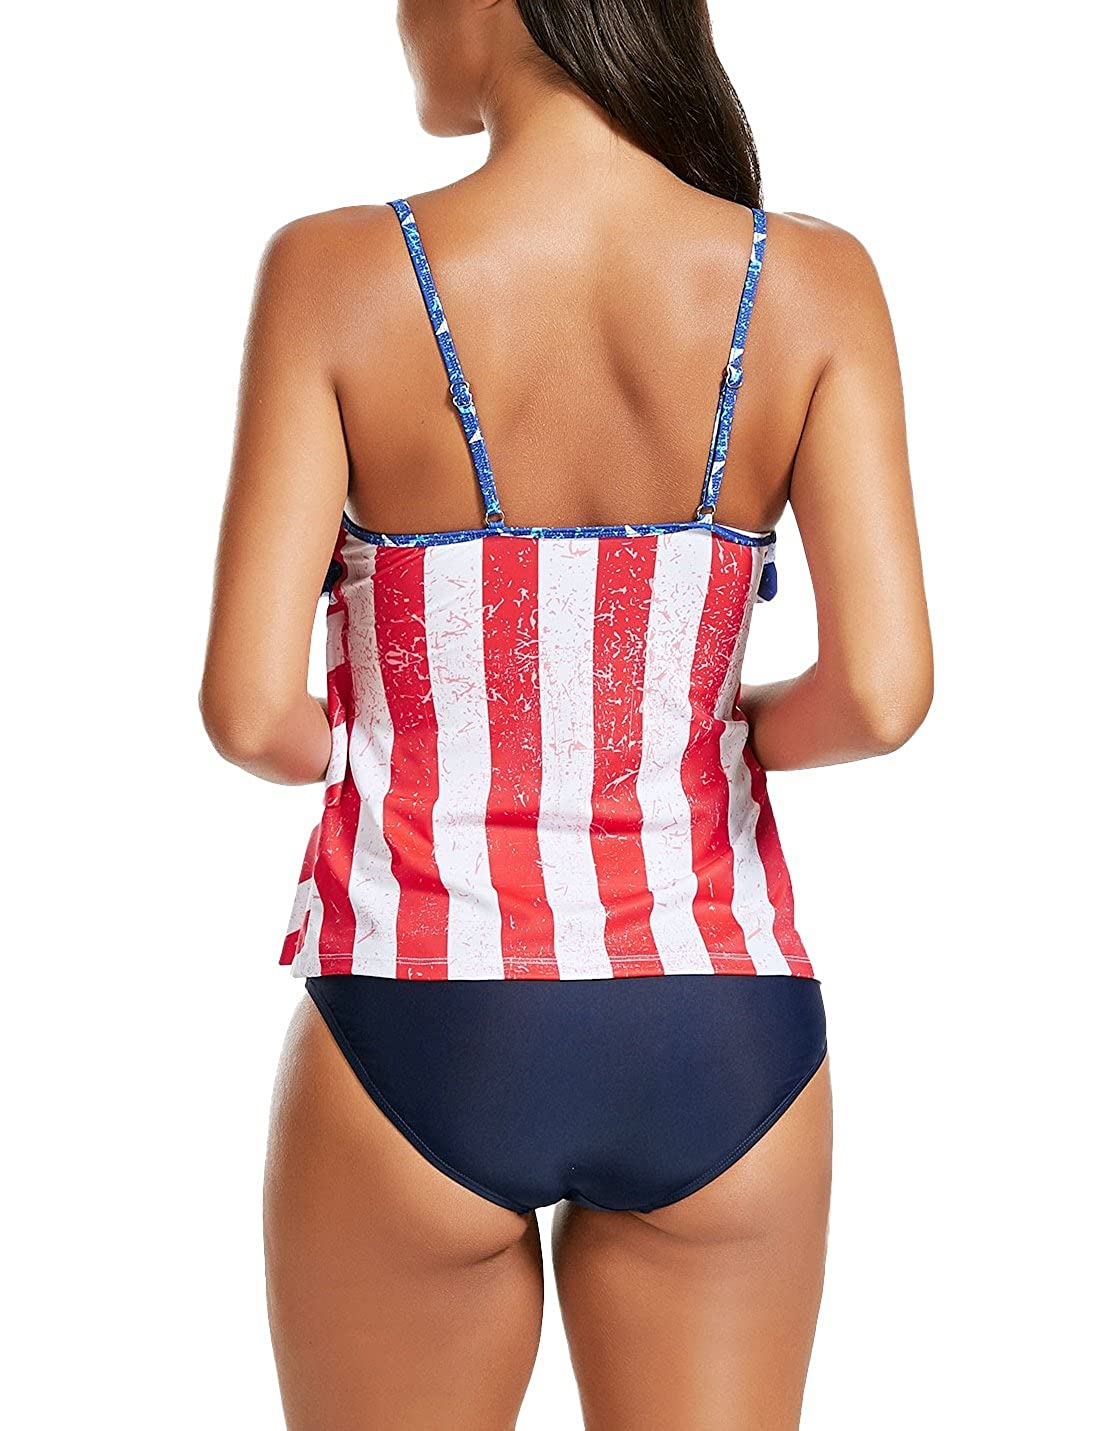 45a6d1eee0 Nicetage Womens Layered Lace Mesh Swimsuit Solid Ruched Bikini Set Tankini  Bathing Suit C-LF